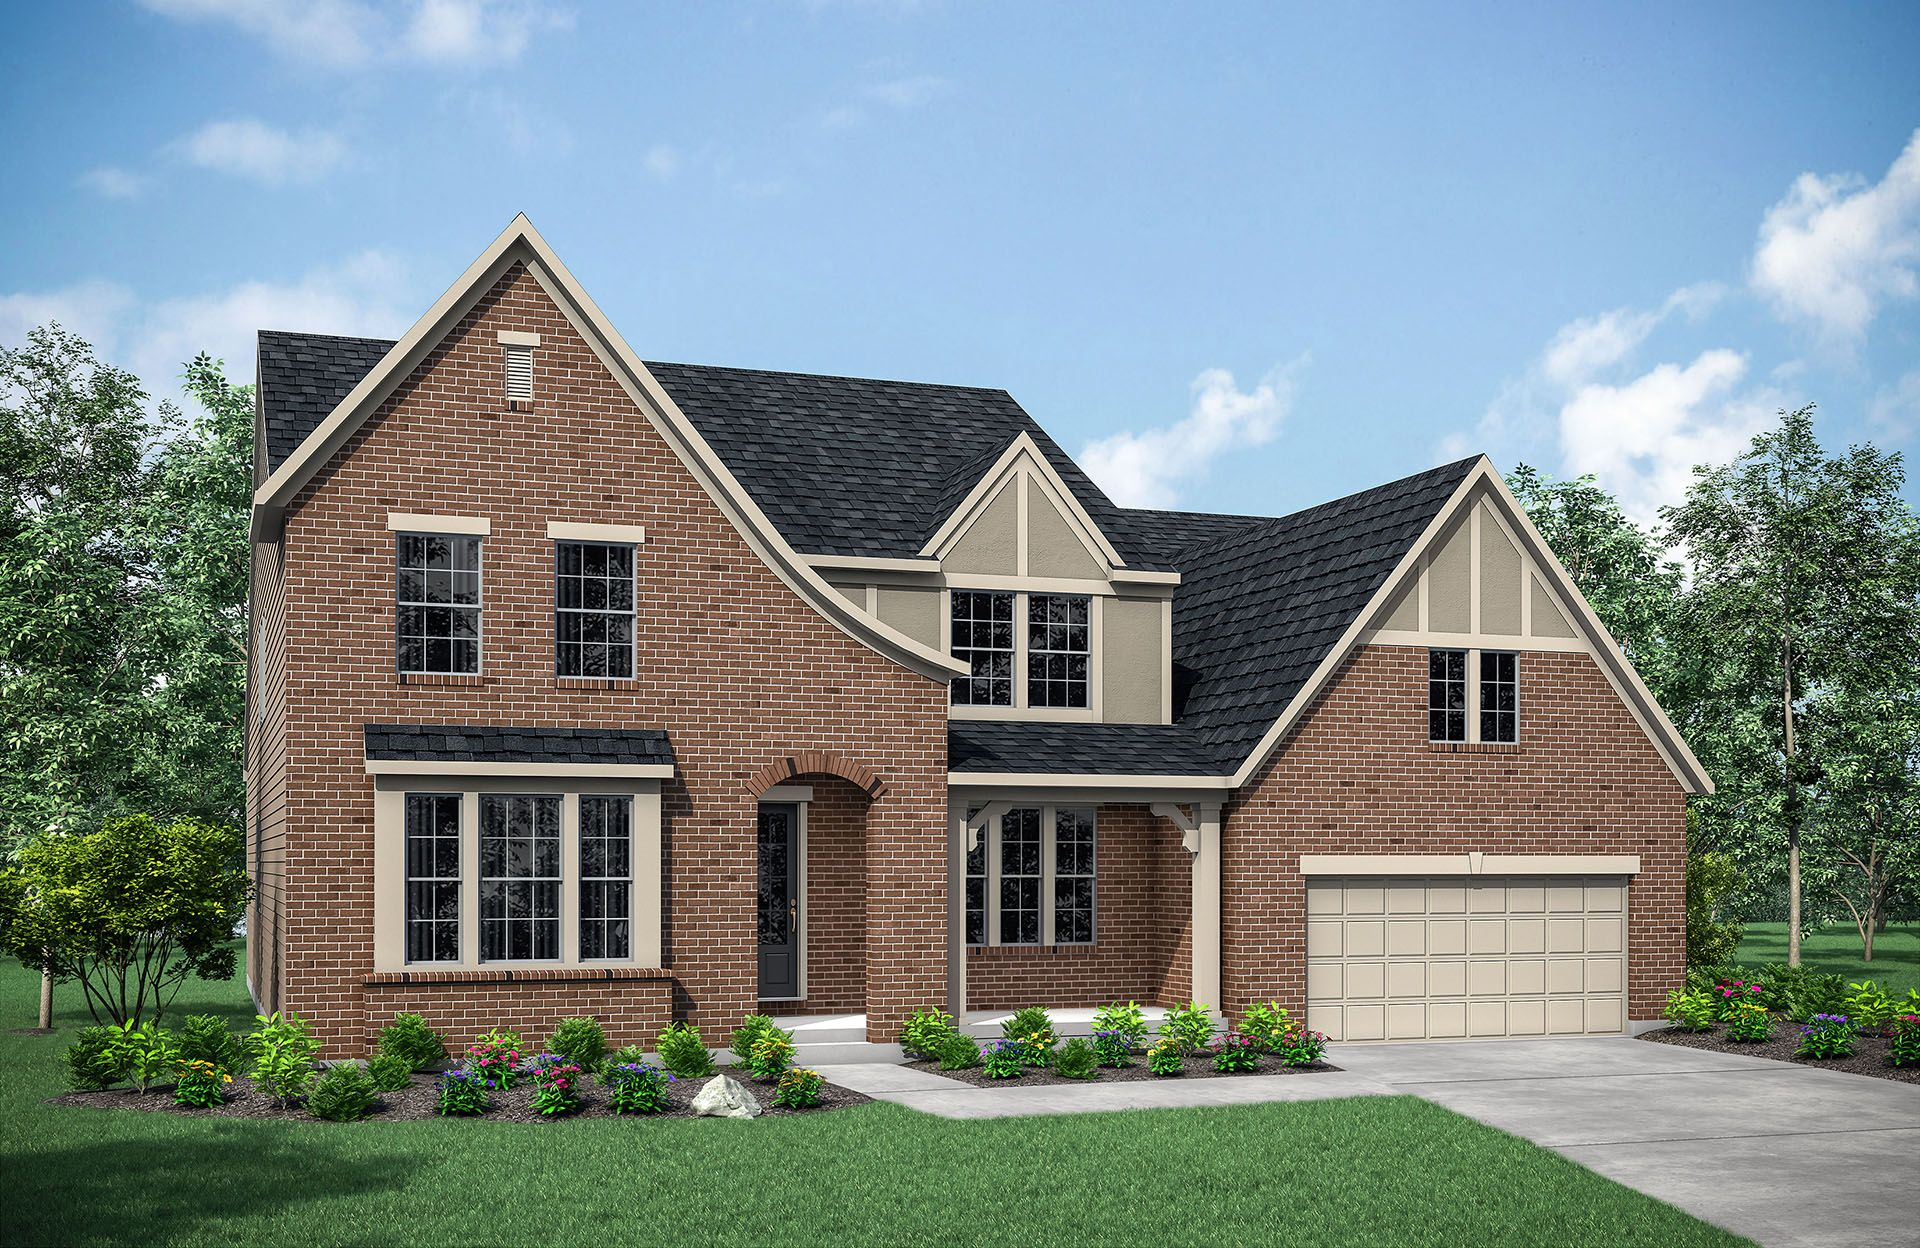 Crestwood B:Crestwood B with front porch